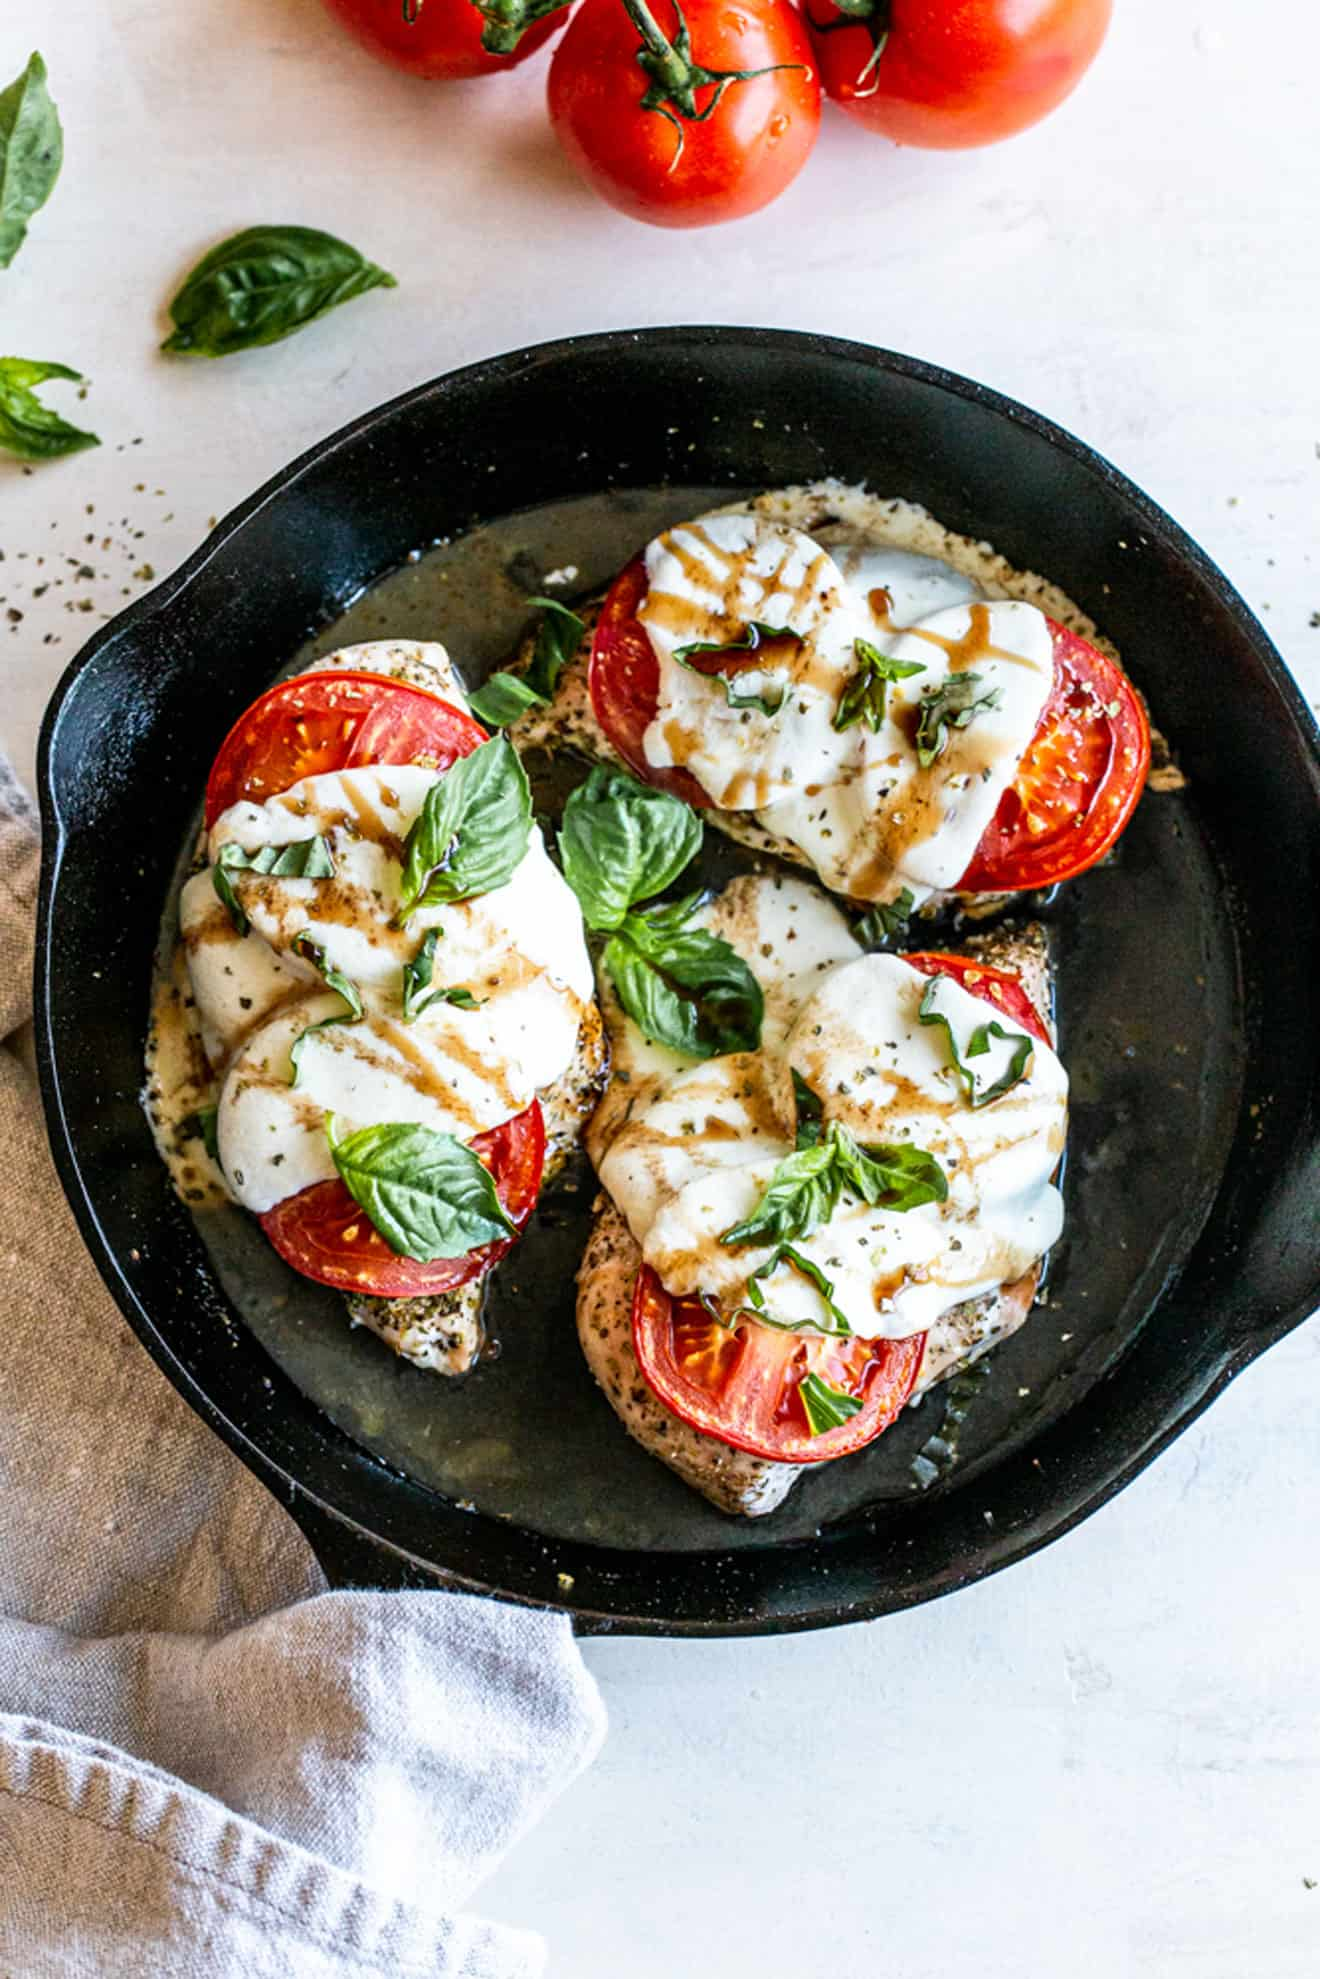 Low Carb Caprese Chicken Skillet The Toasted Pine Nut